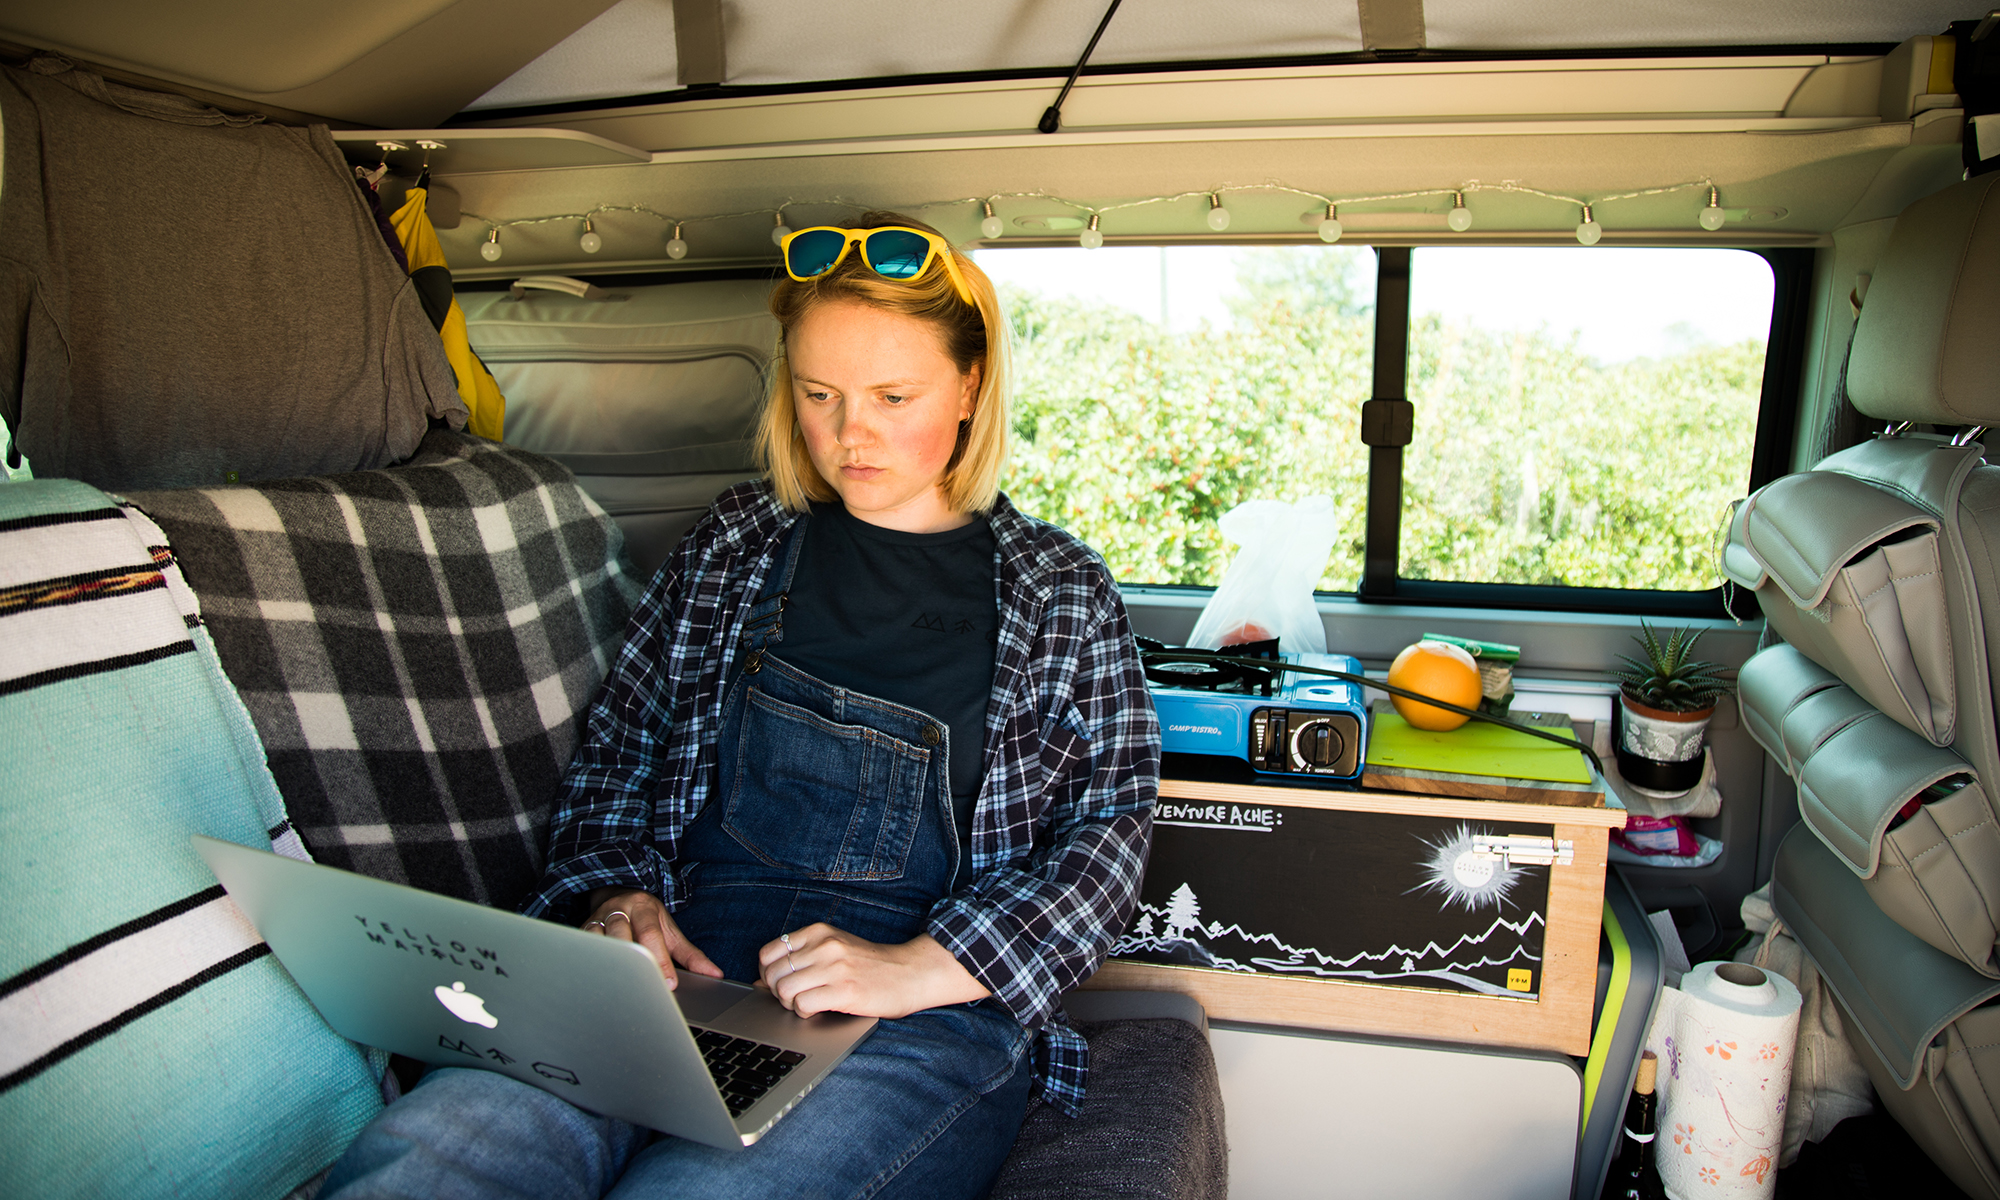 LAURA'S STORY - Laura is a freelance graphic designer and works her way around the world in her bright yellow campervan… who said design was a desk job!